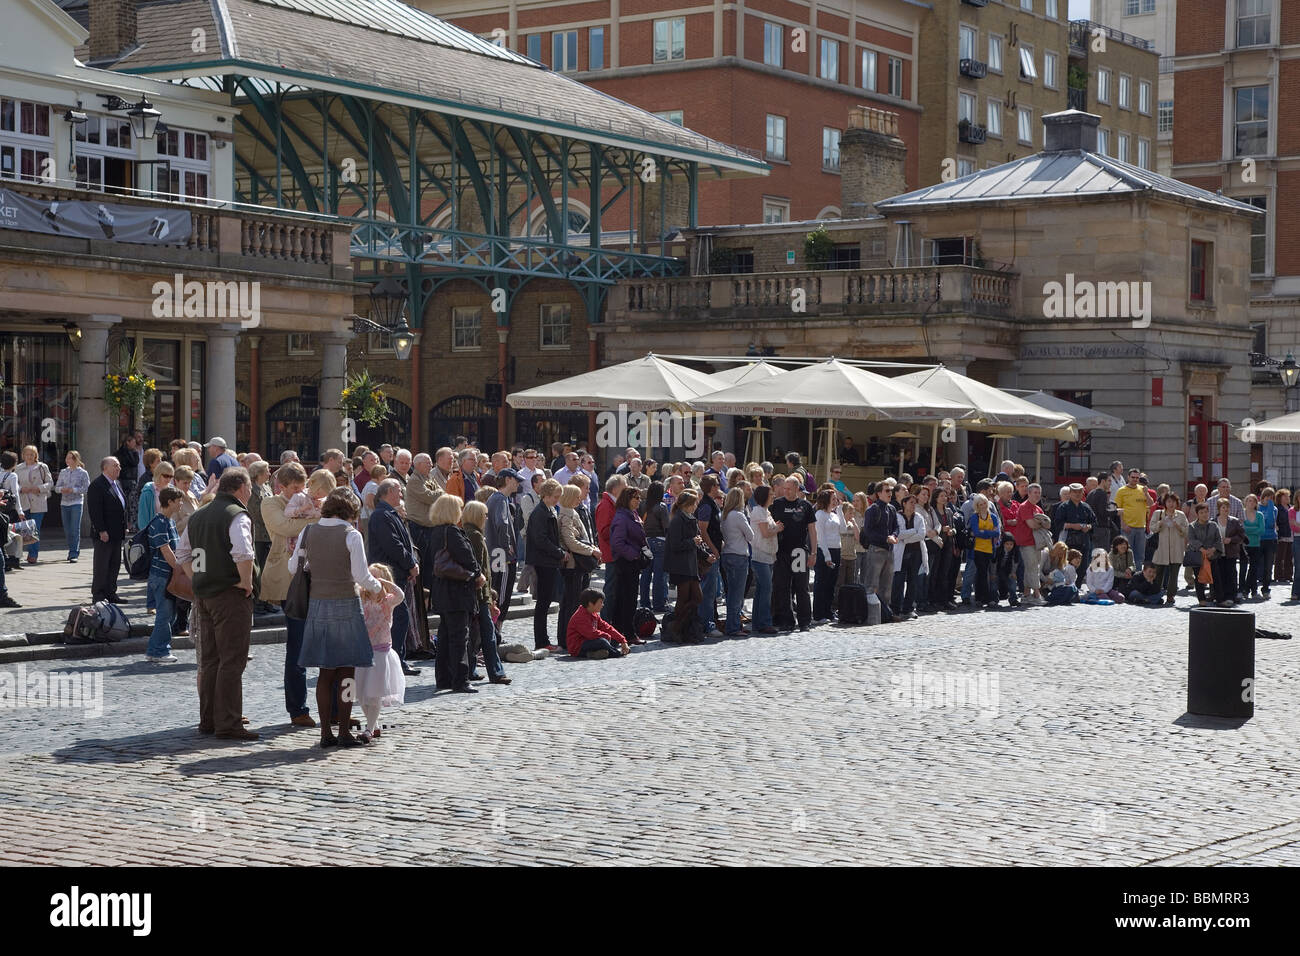 a small crowd looks on at a performer at Covent Garden in London - Stock Image